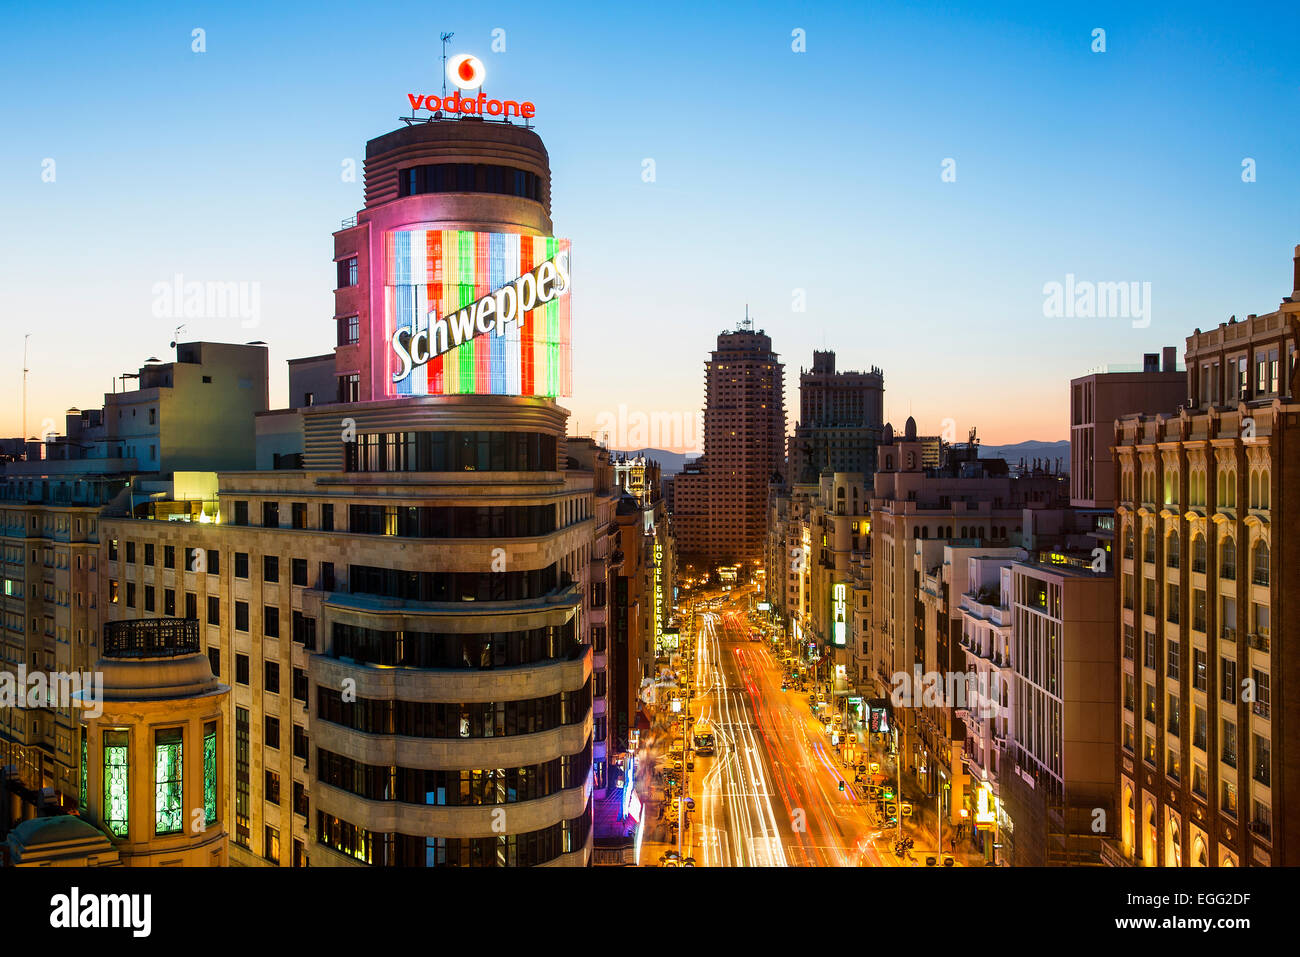 Skyline of Madrid at Dusk - Stock Image